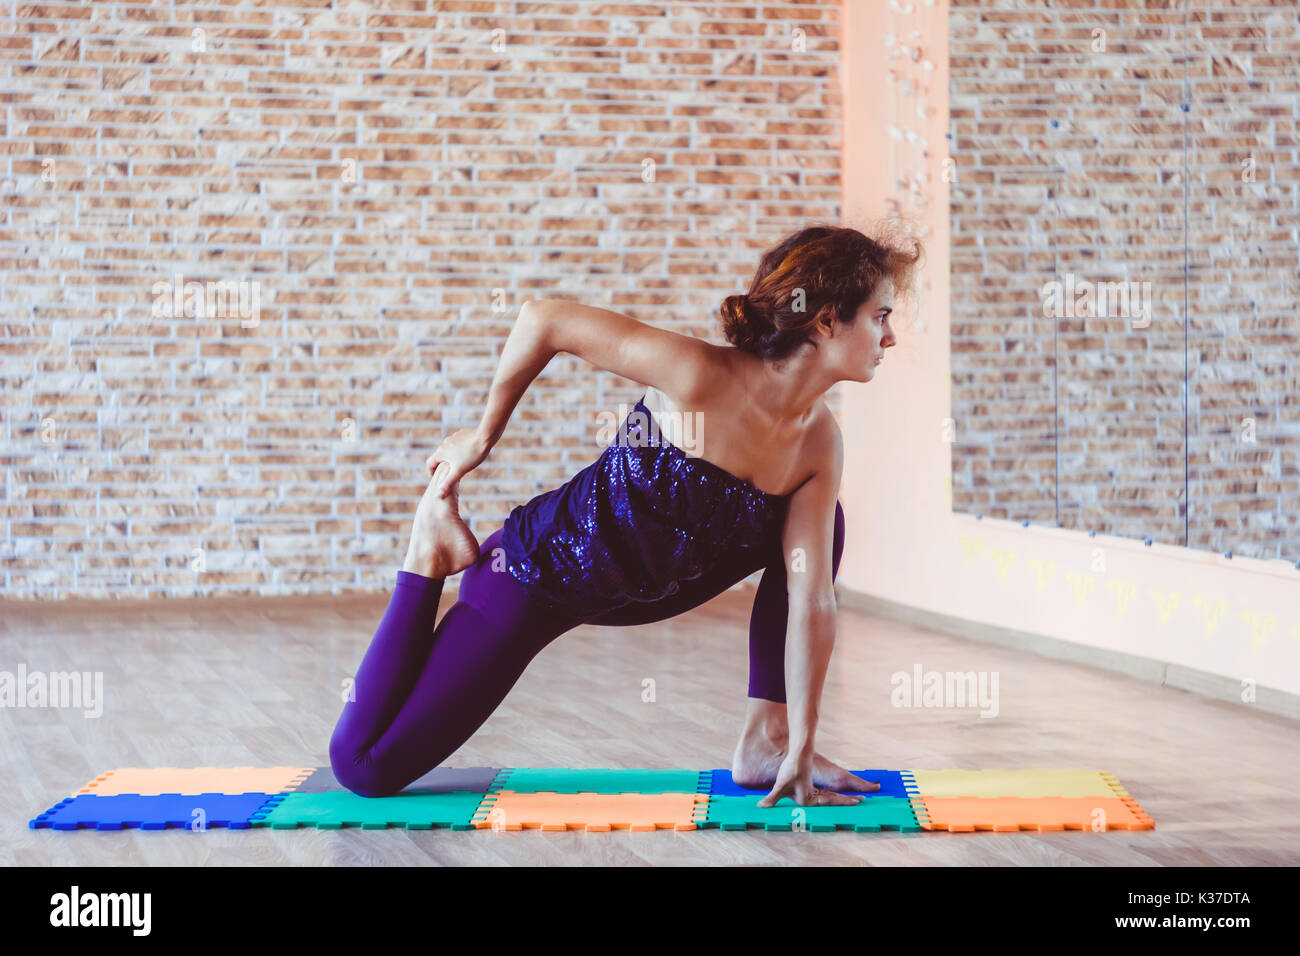 Full length side view portrait of beautiful young woman working out in luxury fitness center, doing yoga or pilates exercise without mat on wooden flo - Stock Image